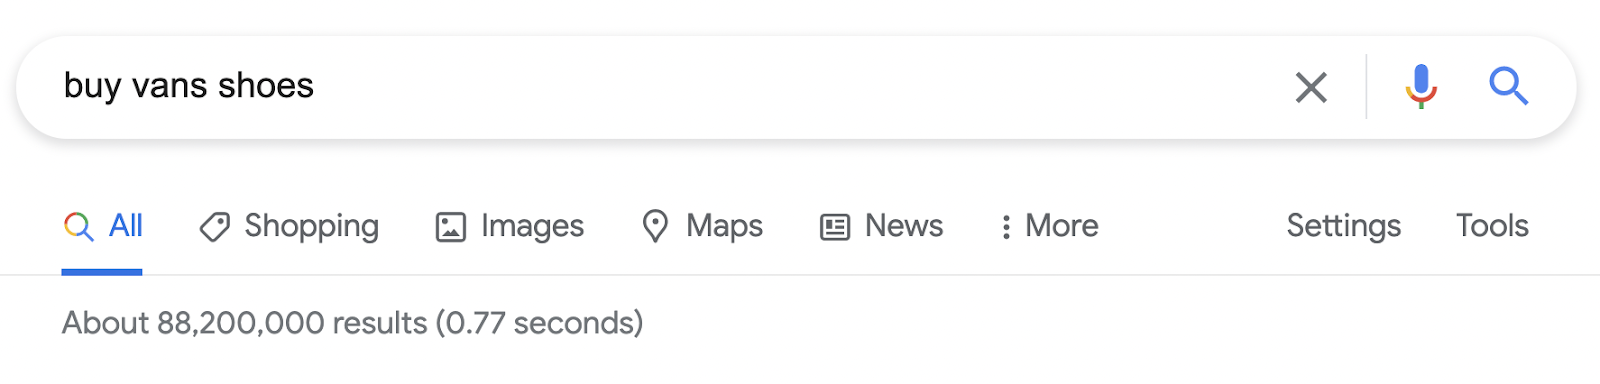 Google Shopping is a search option under the search bar